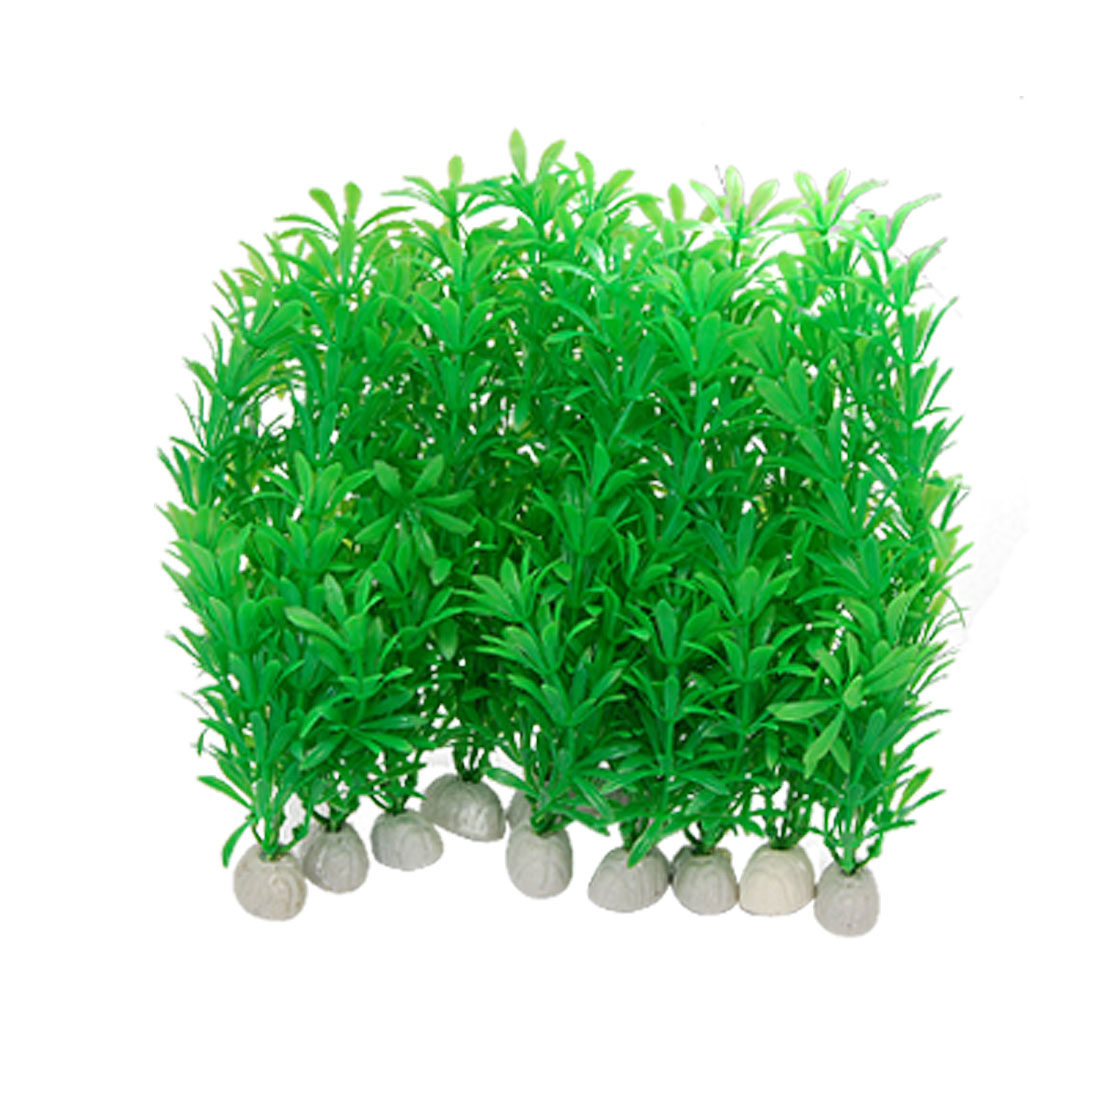 Green Plastic Plants Grass Decor for Aquarium Water Tank